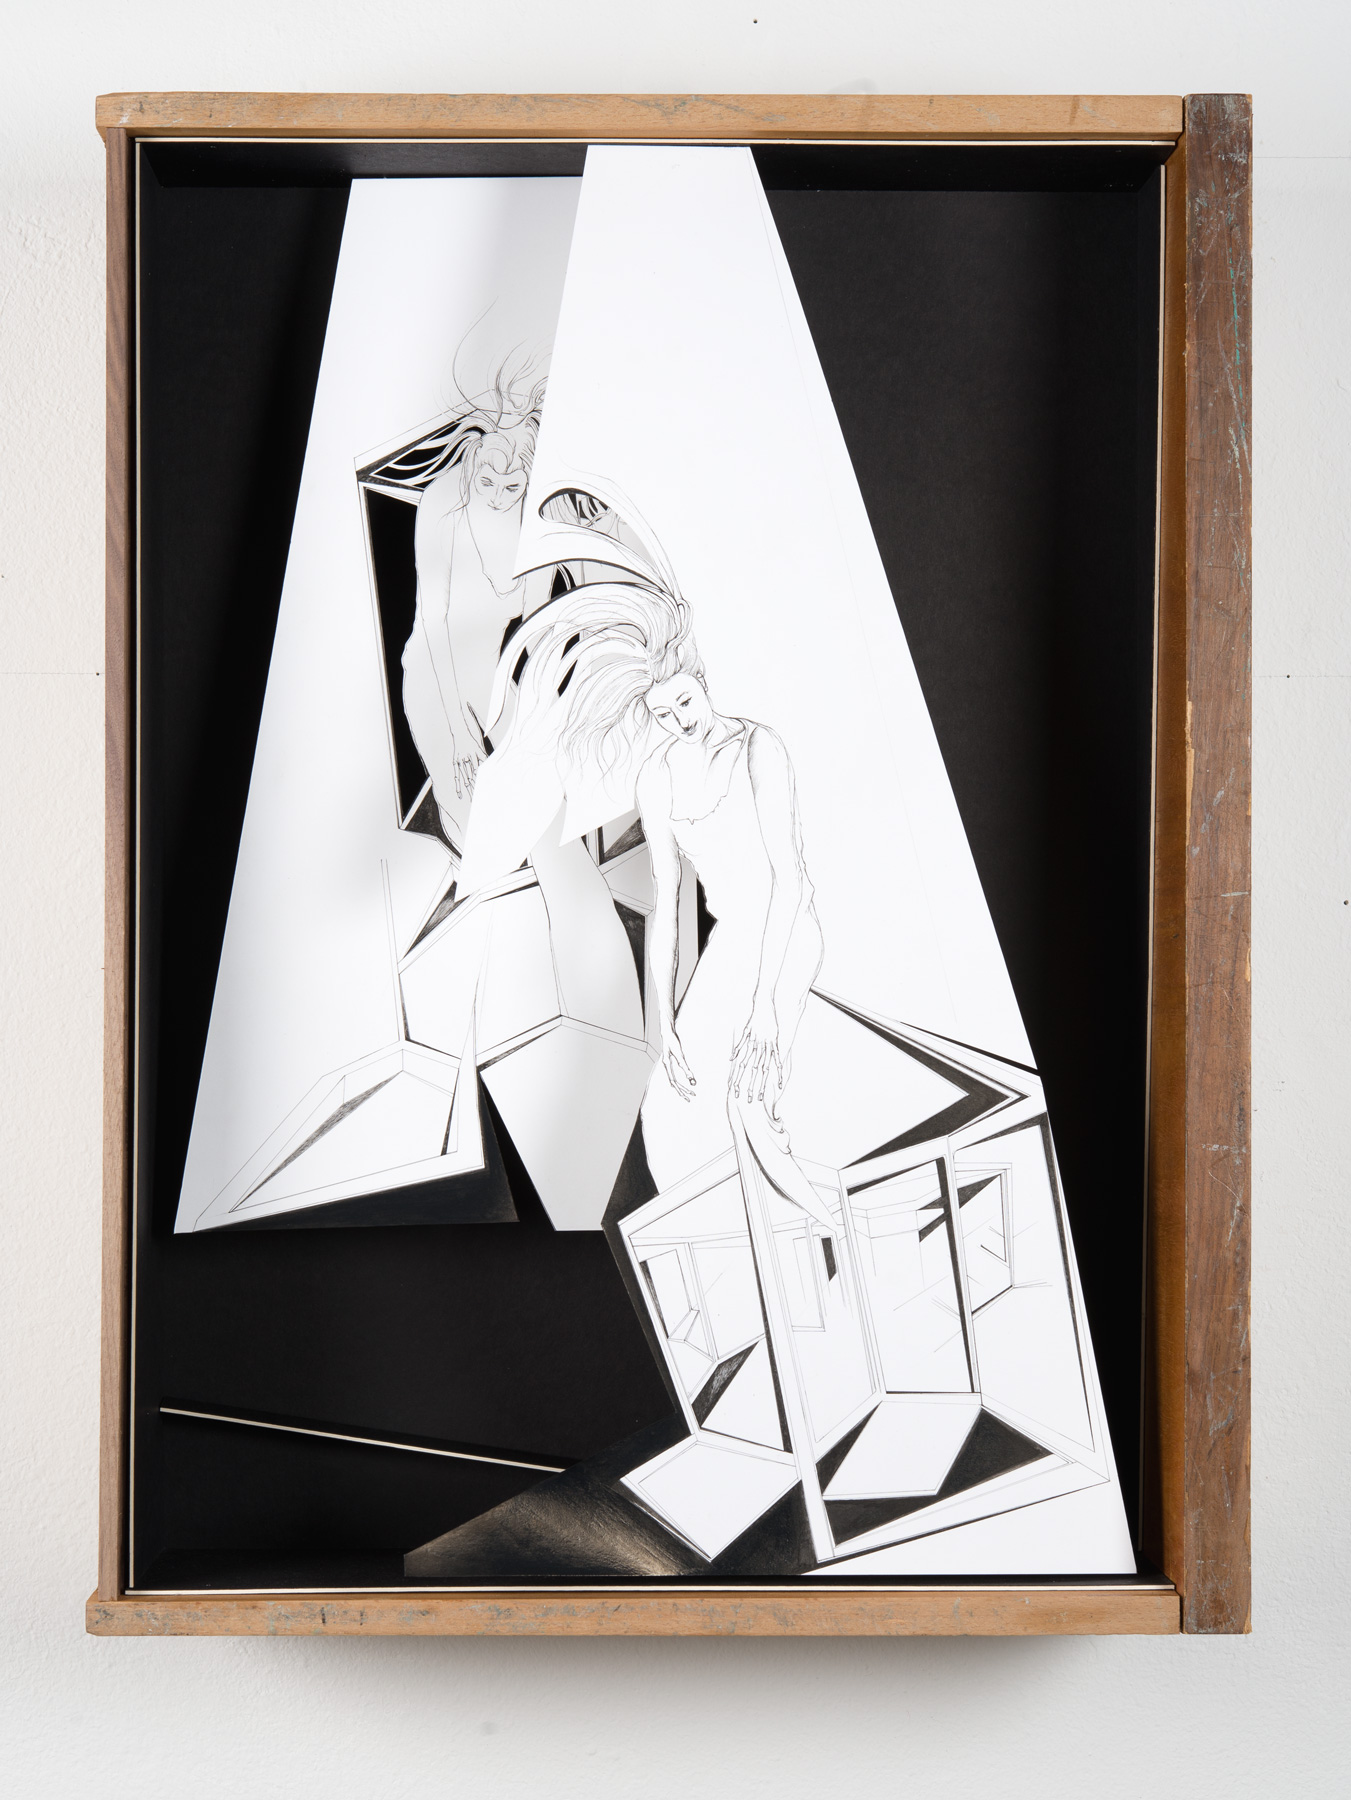 Nina Annabelle Märkl | Into the light | Ink on paper, cut outs, black paper, wooden box | 55 x 43,5 x 15 cm | 2014